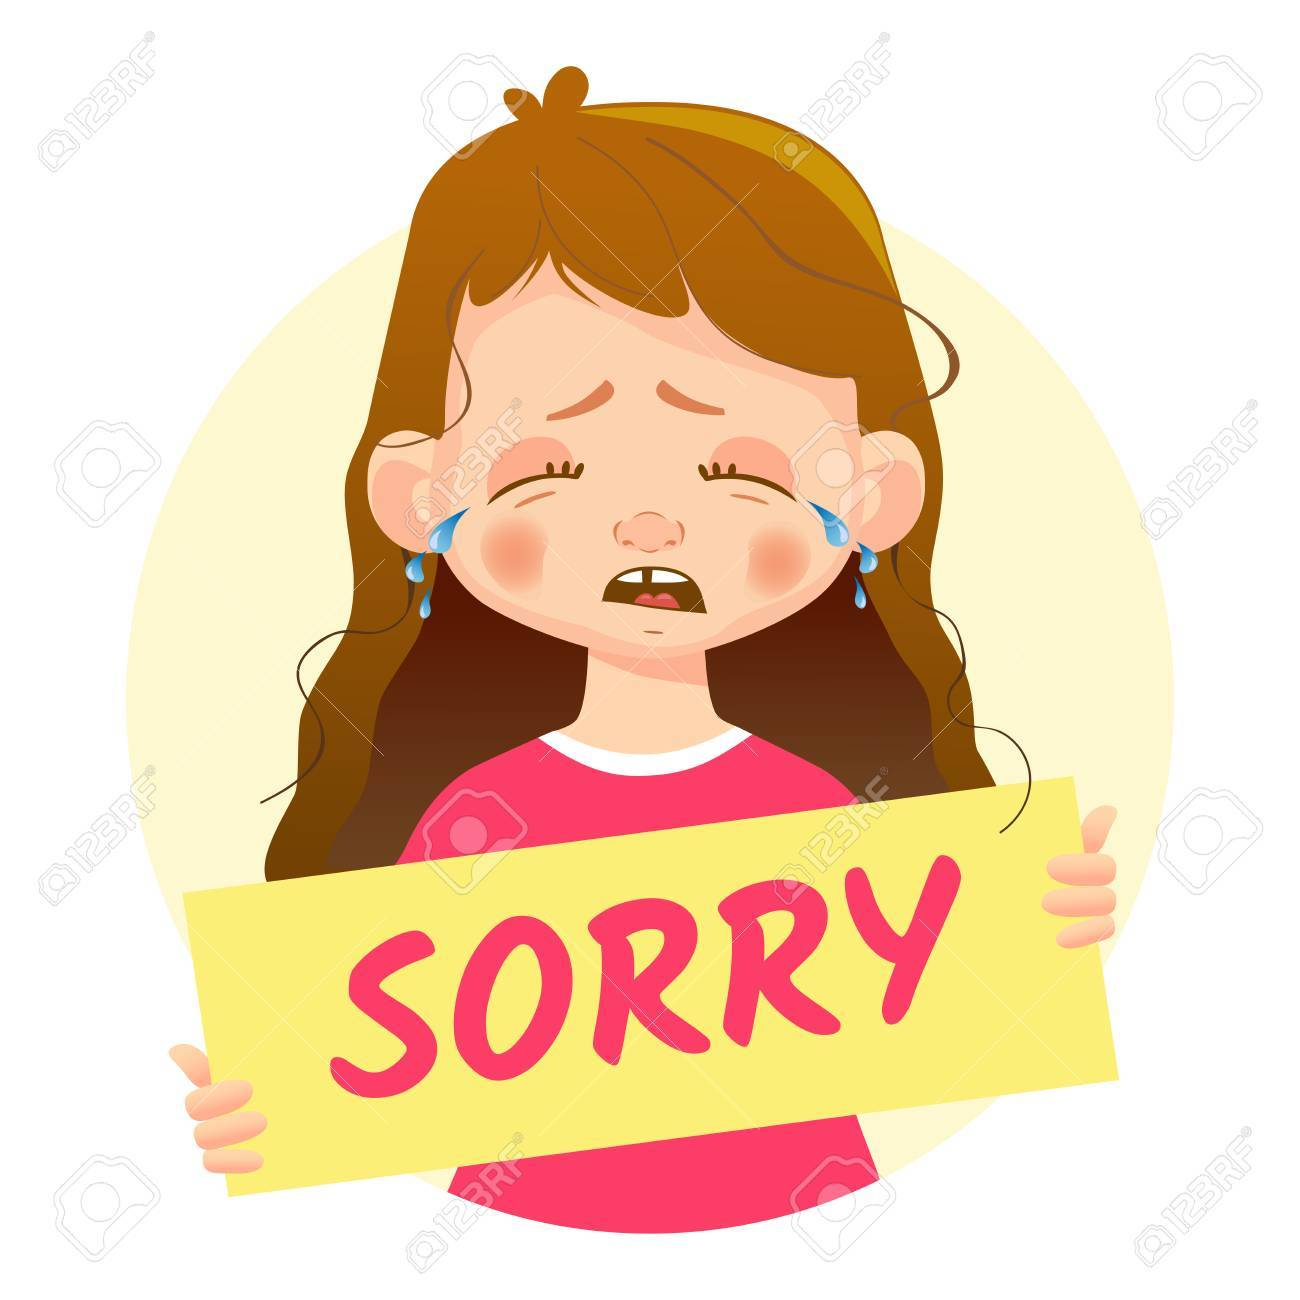 sample of resignation letter%0A I am sorry message girl holding sorry poster royalty free i am sorry  message girl holding